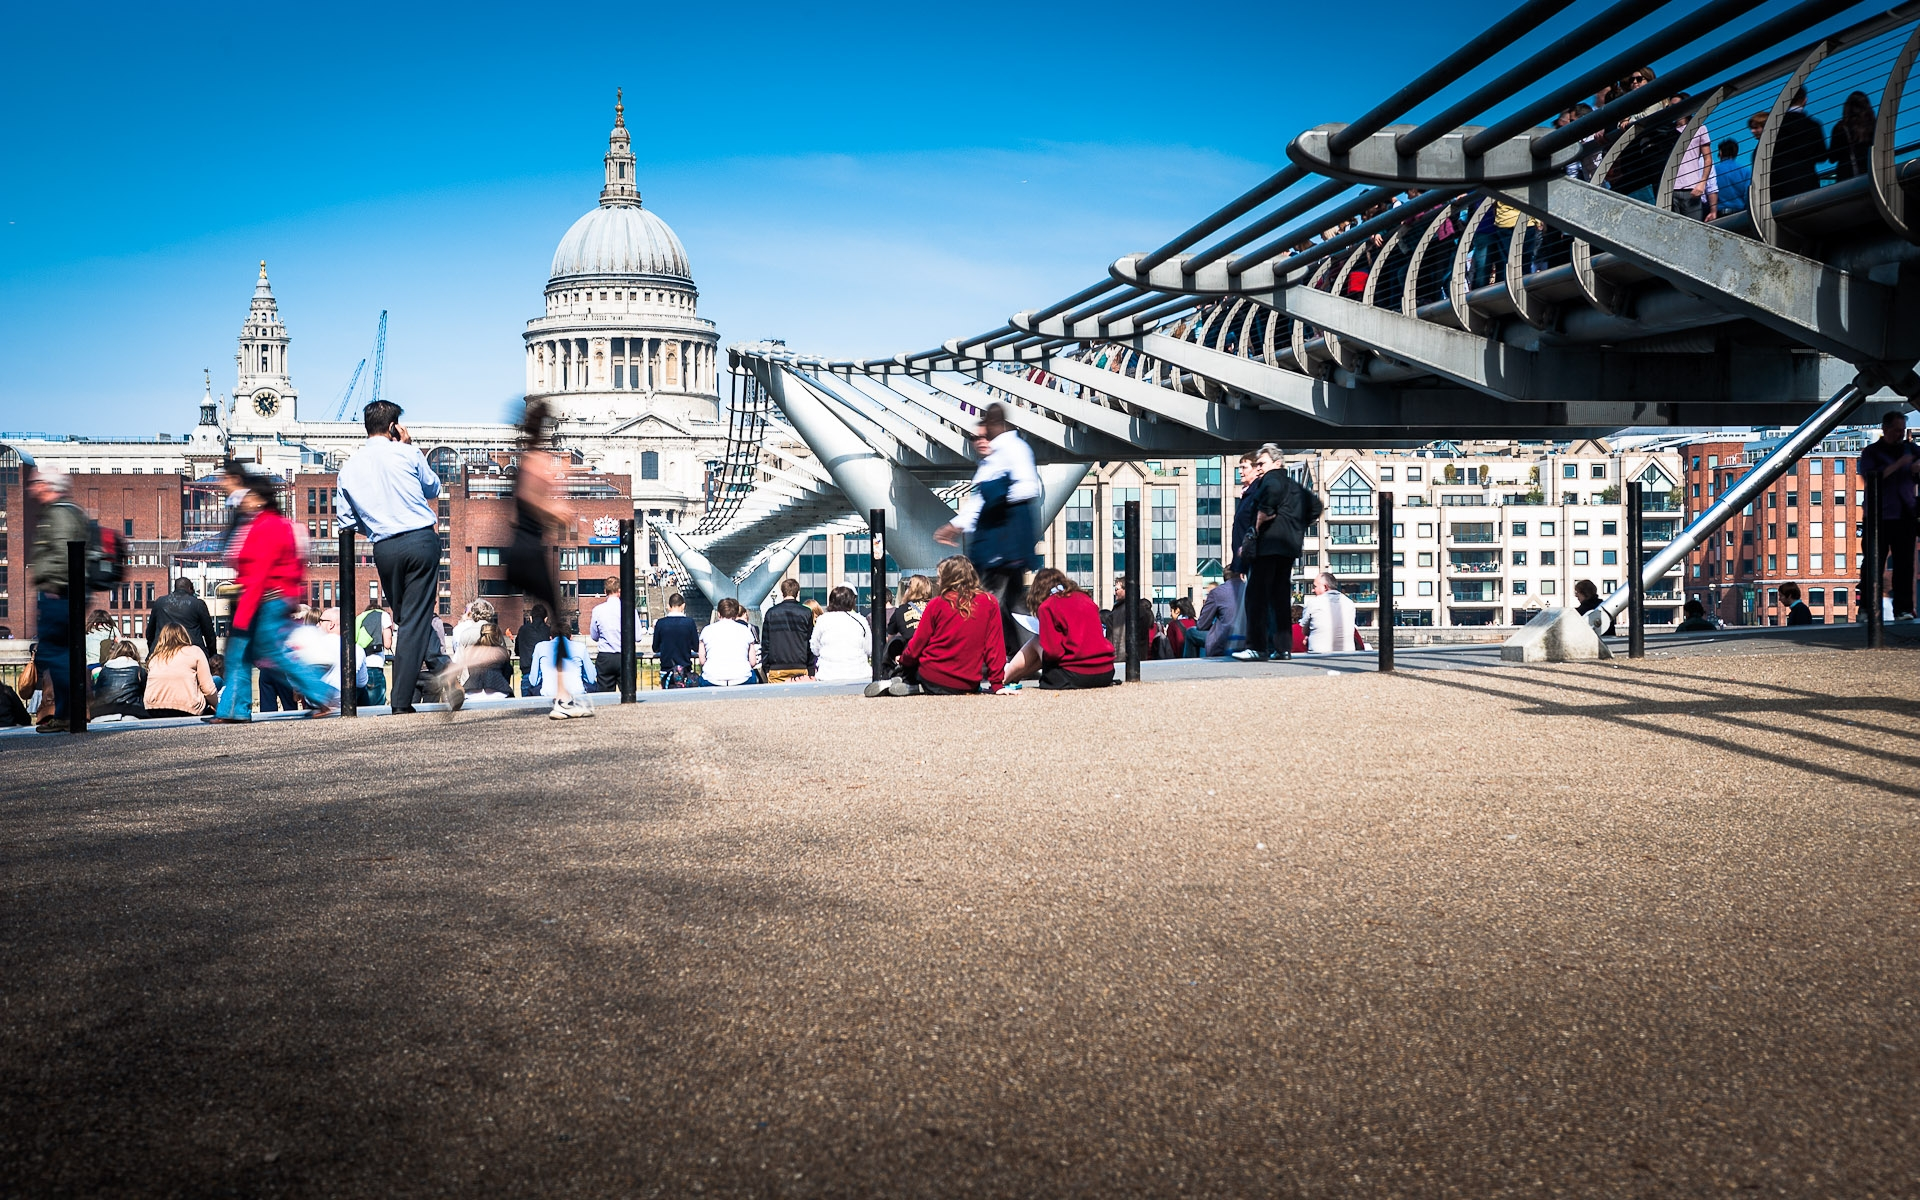 millenium bridge towards st pauls people walking and jogging